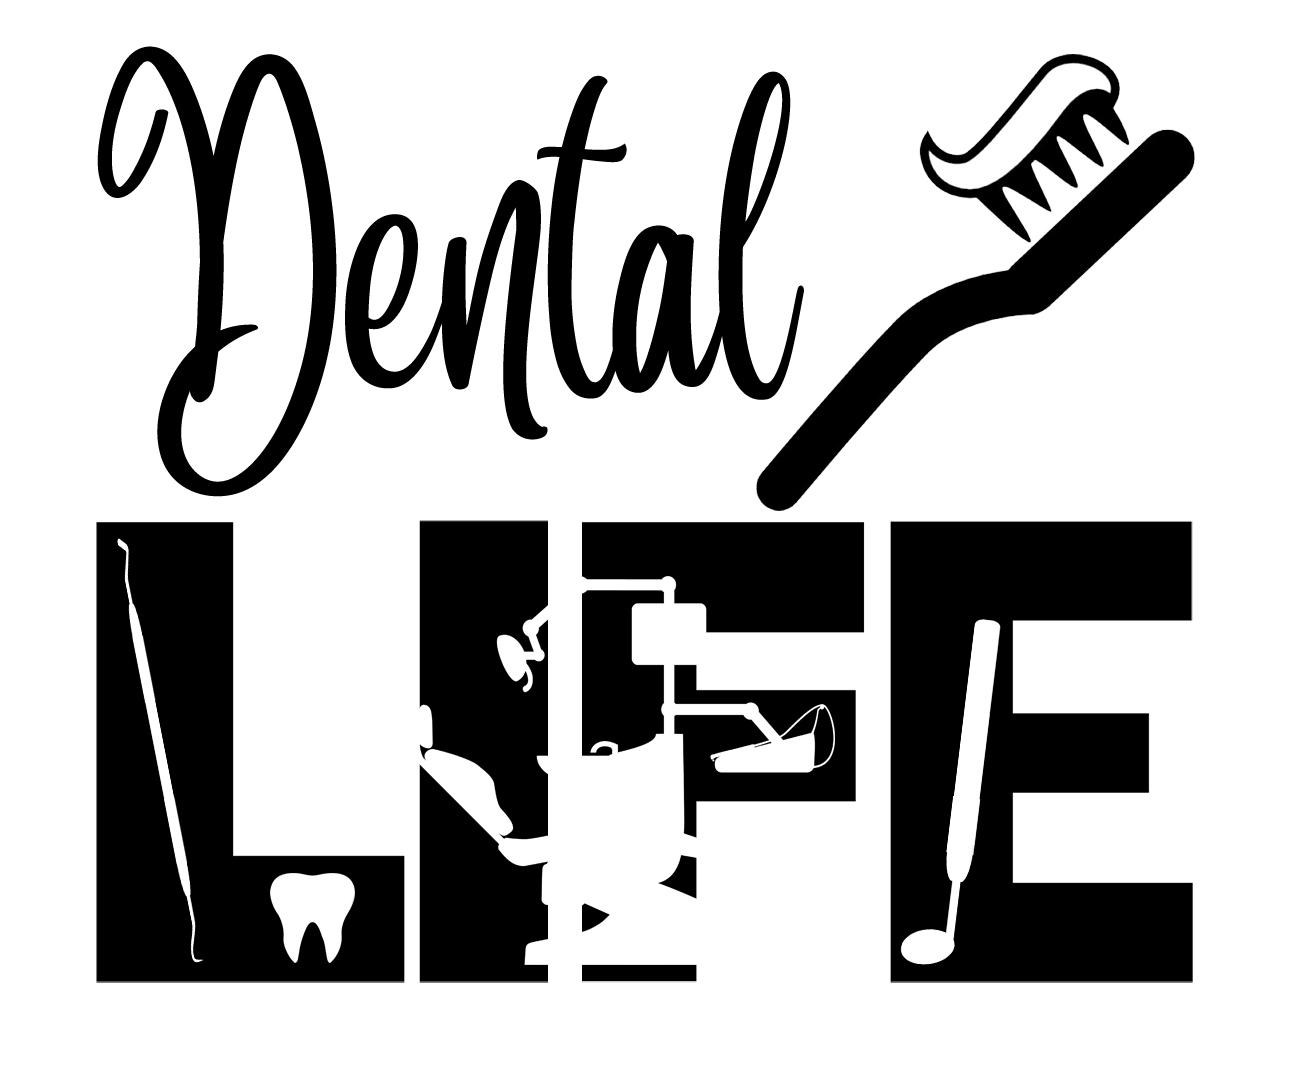 Free Dental Life SVG File